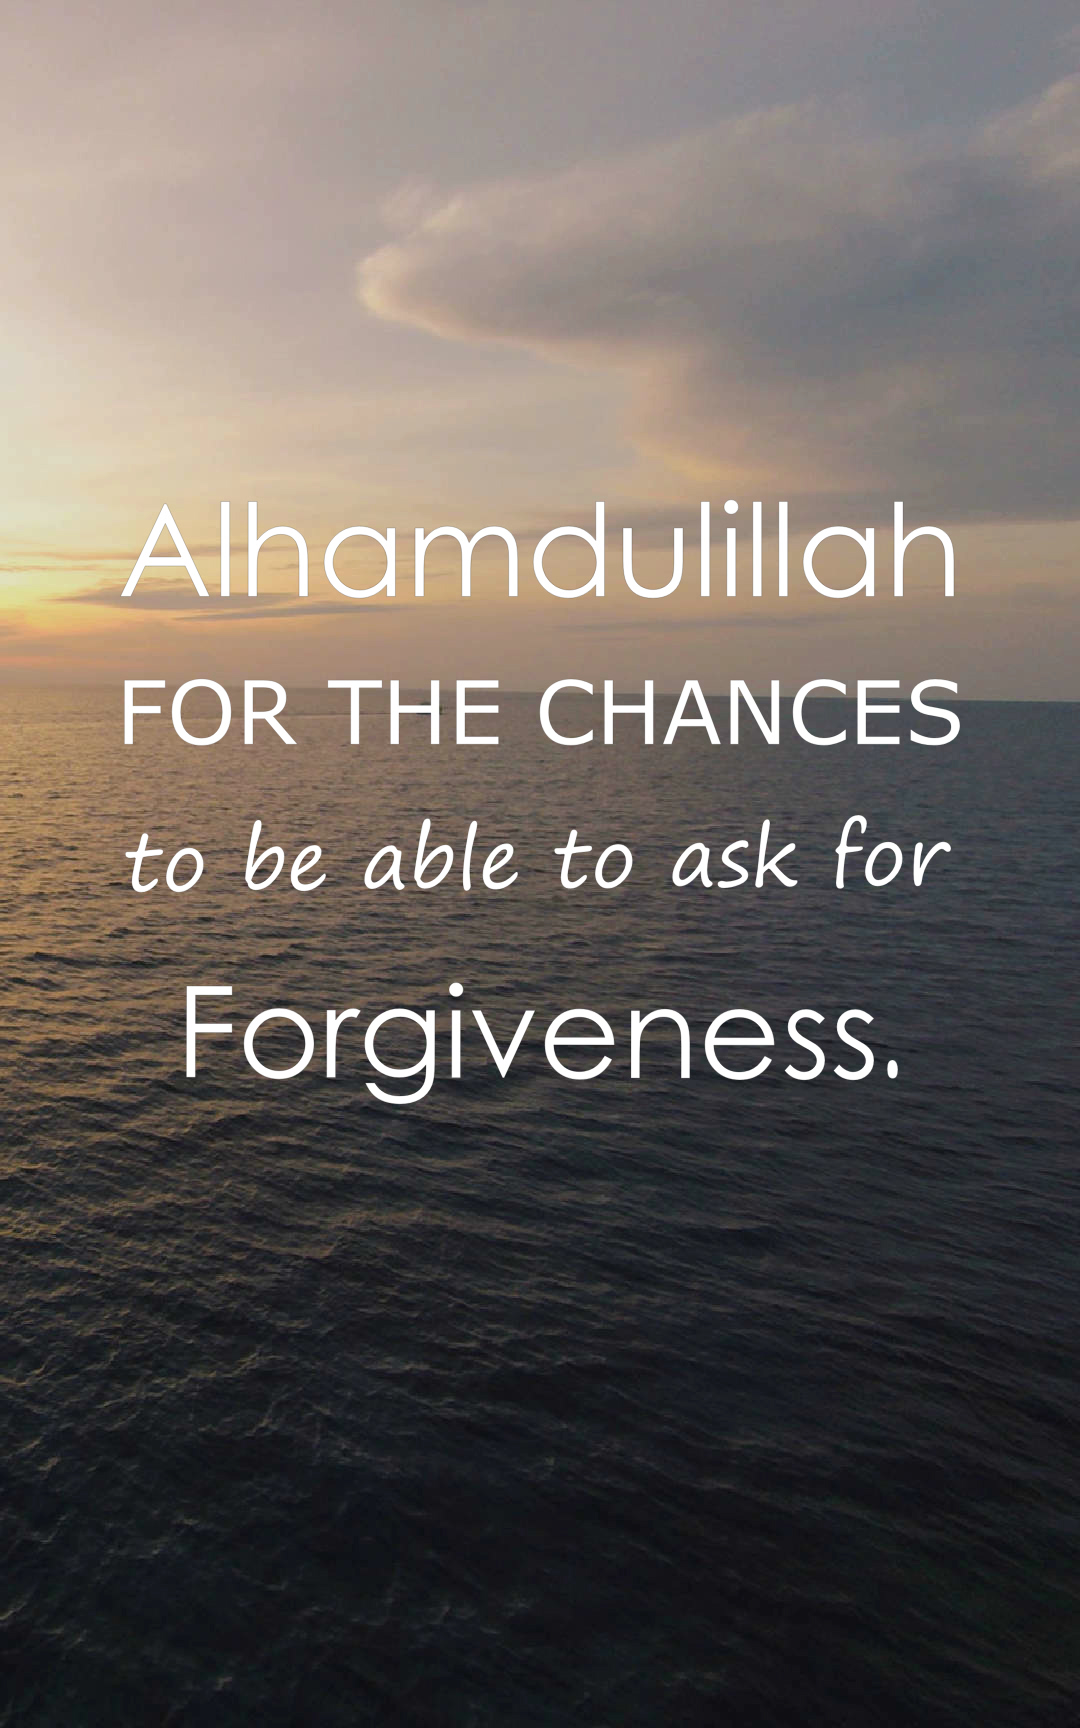 Inspirational Islamic Quotes